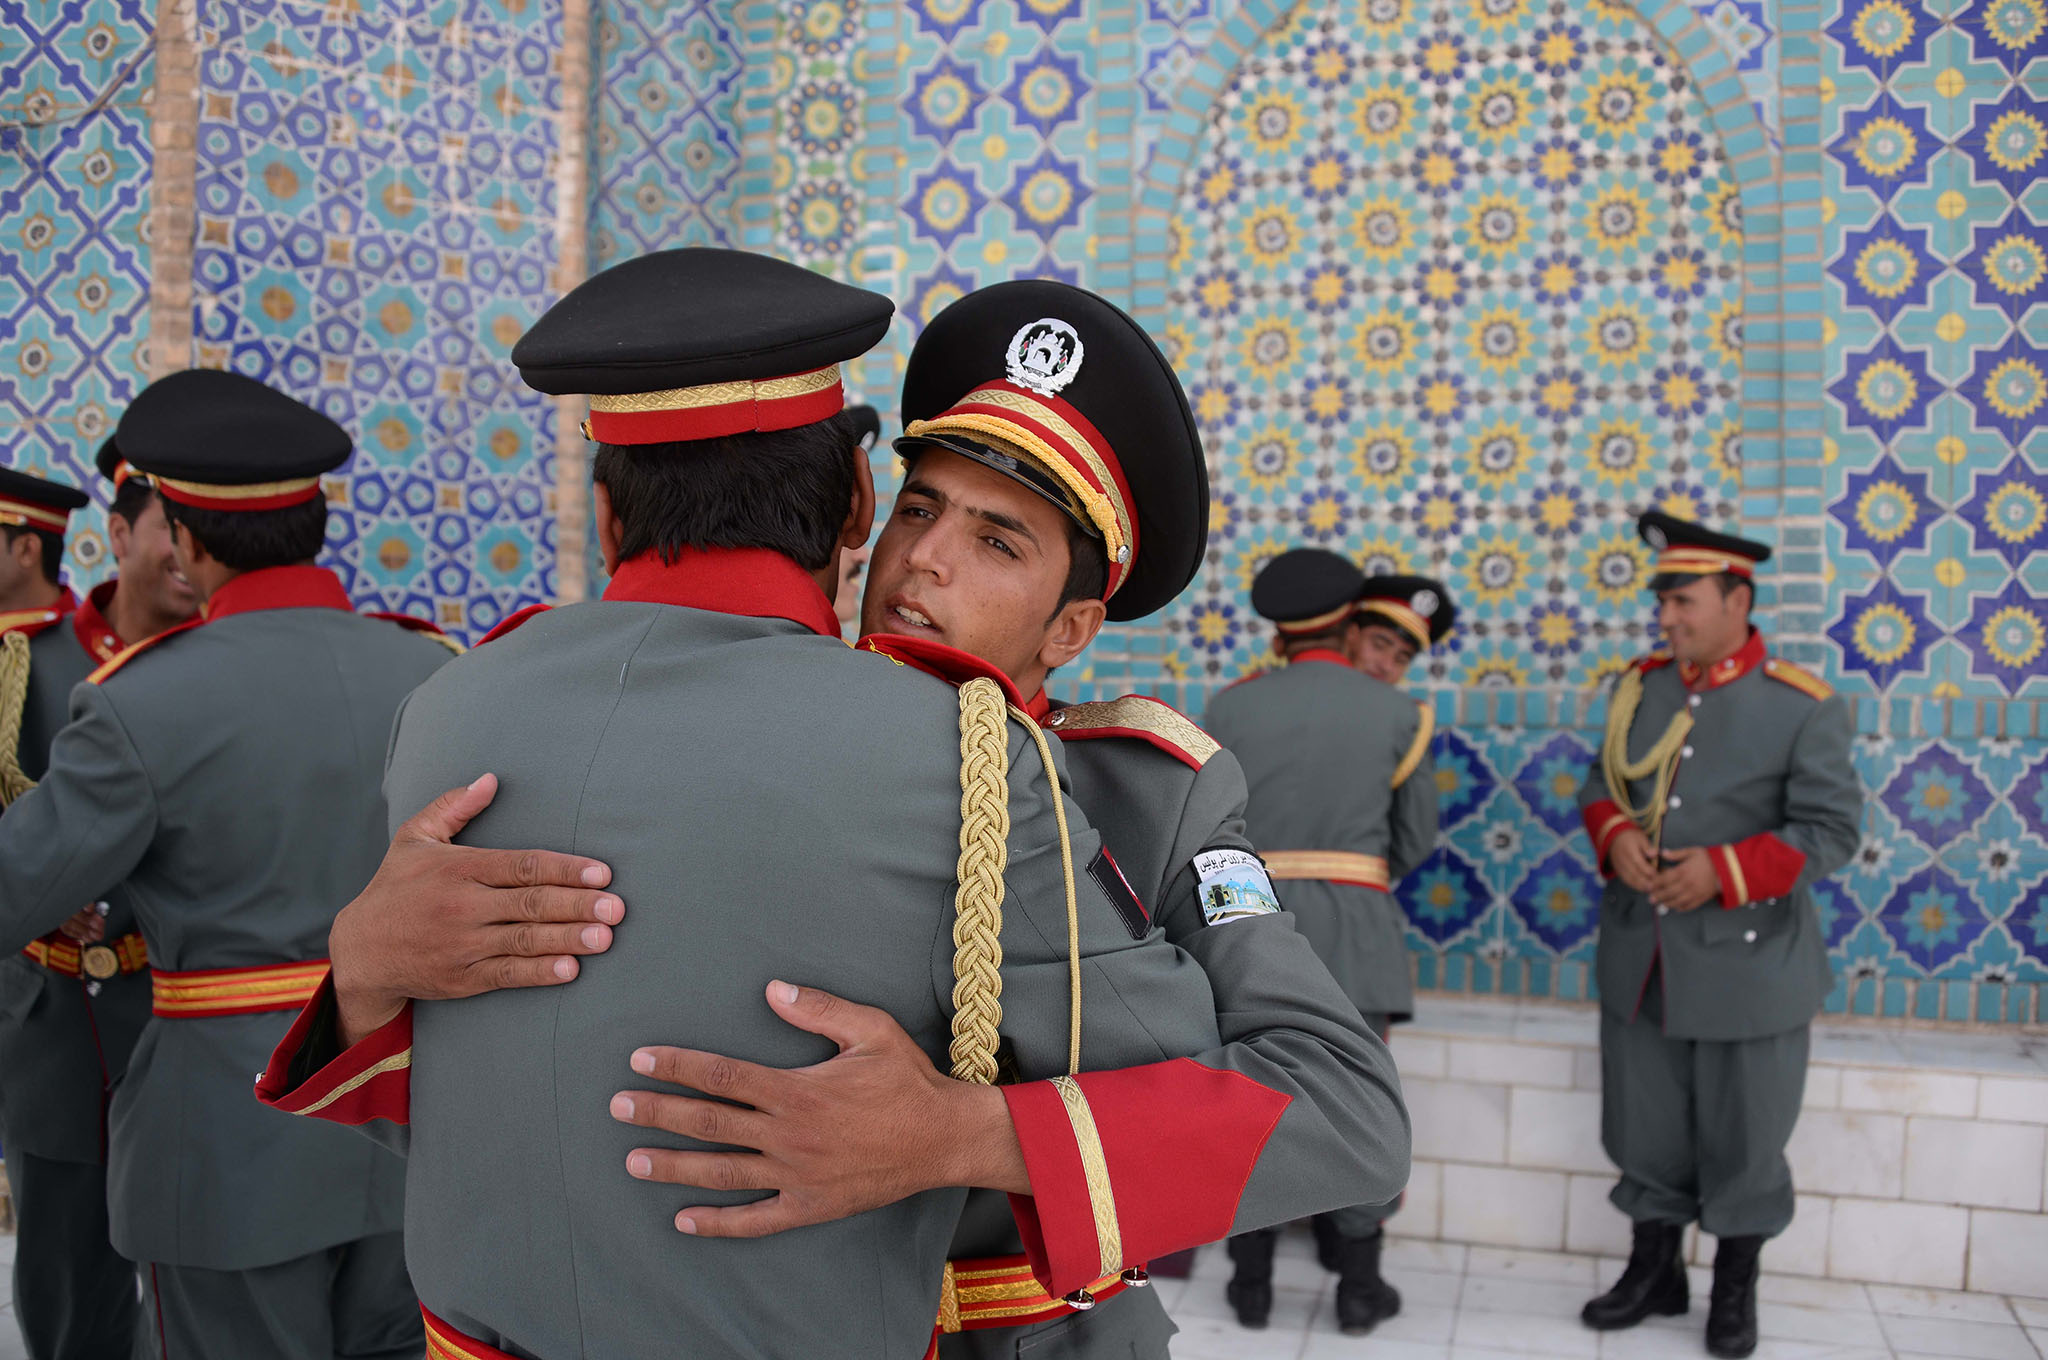 "Members of an Afghan guard of honour greet each other after offering Eid-al-Adha prayers at the Hazrat-i- Ali shrine in Mazar-i Sharif on September 12, 2016. Afghans started celebrating Eid al-Adha or ""Feast of the Sacrifice"", which marks the end of the annual hajj or pilgrimage to Mecca and is celebrated in remembrance of Abraham's readiness to sacrifice his son to God. / AFP PHOTO / FARSHAD USYANFARSHAD USYAN/AFP/Getty Images"